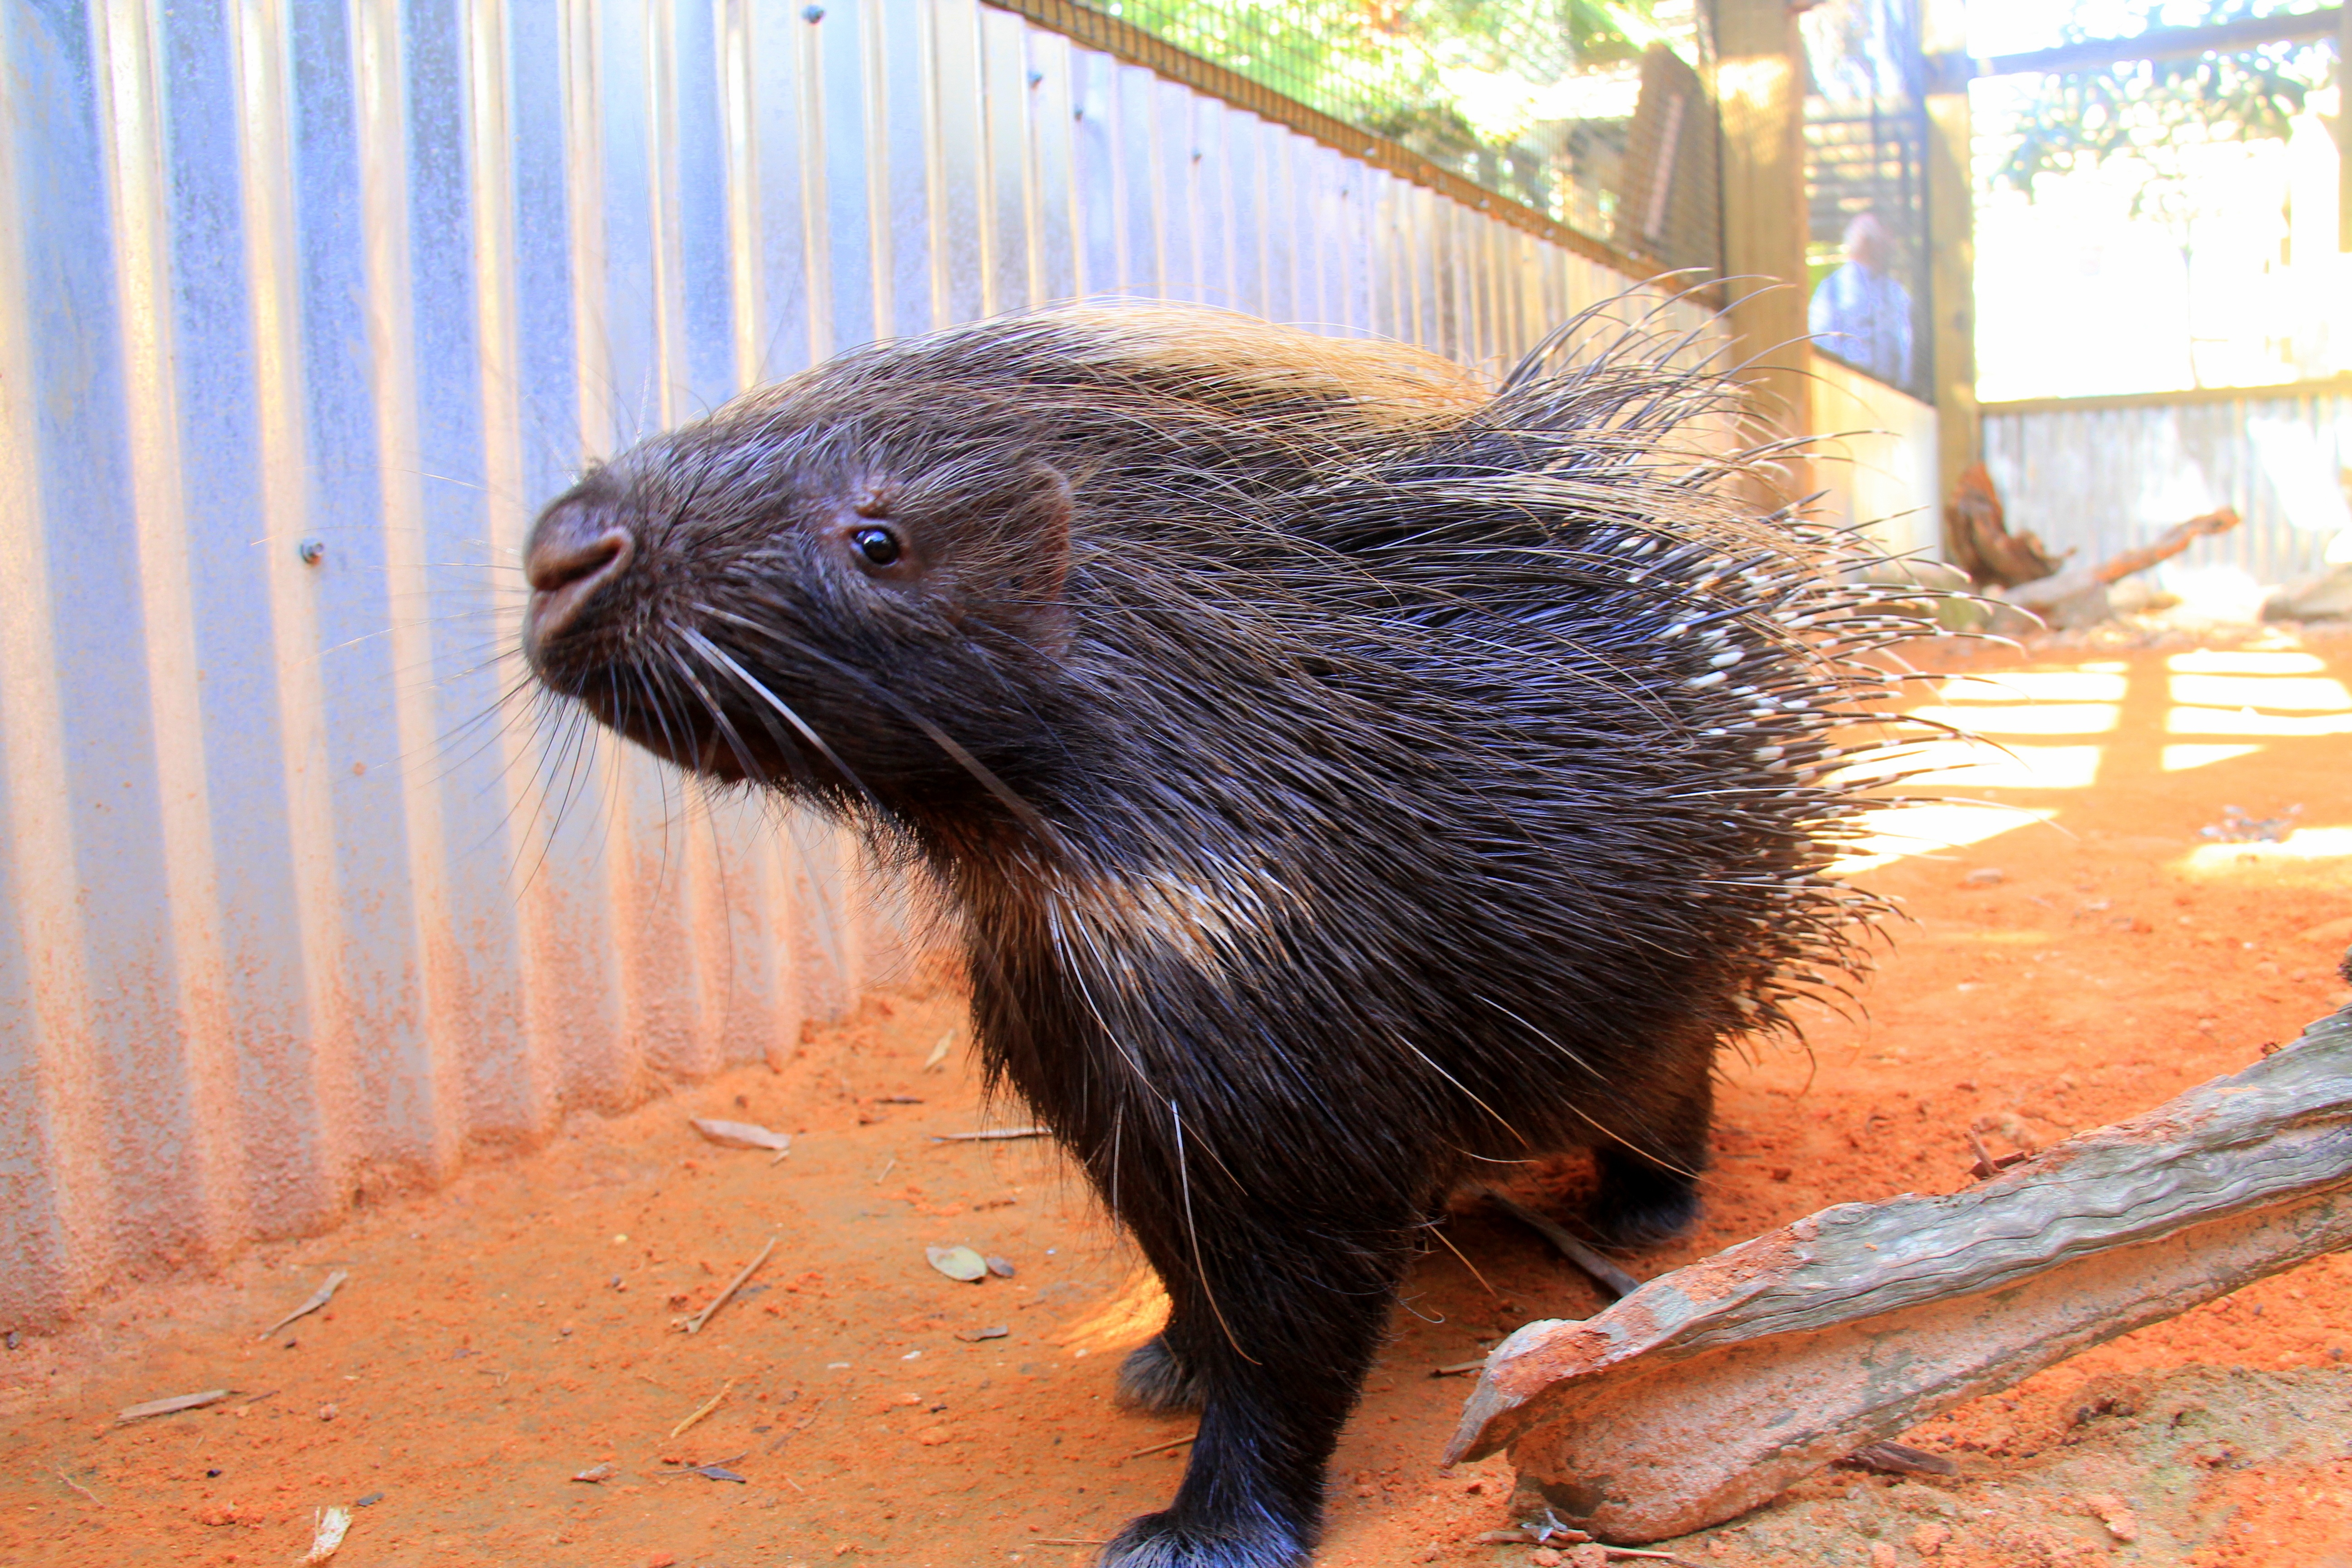 Stella the porcupine at Wild Florida